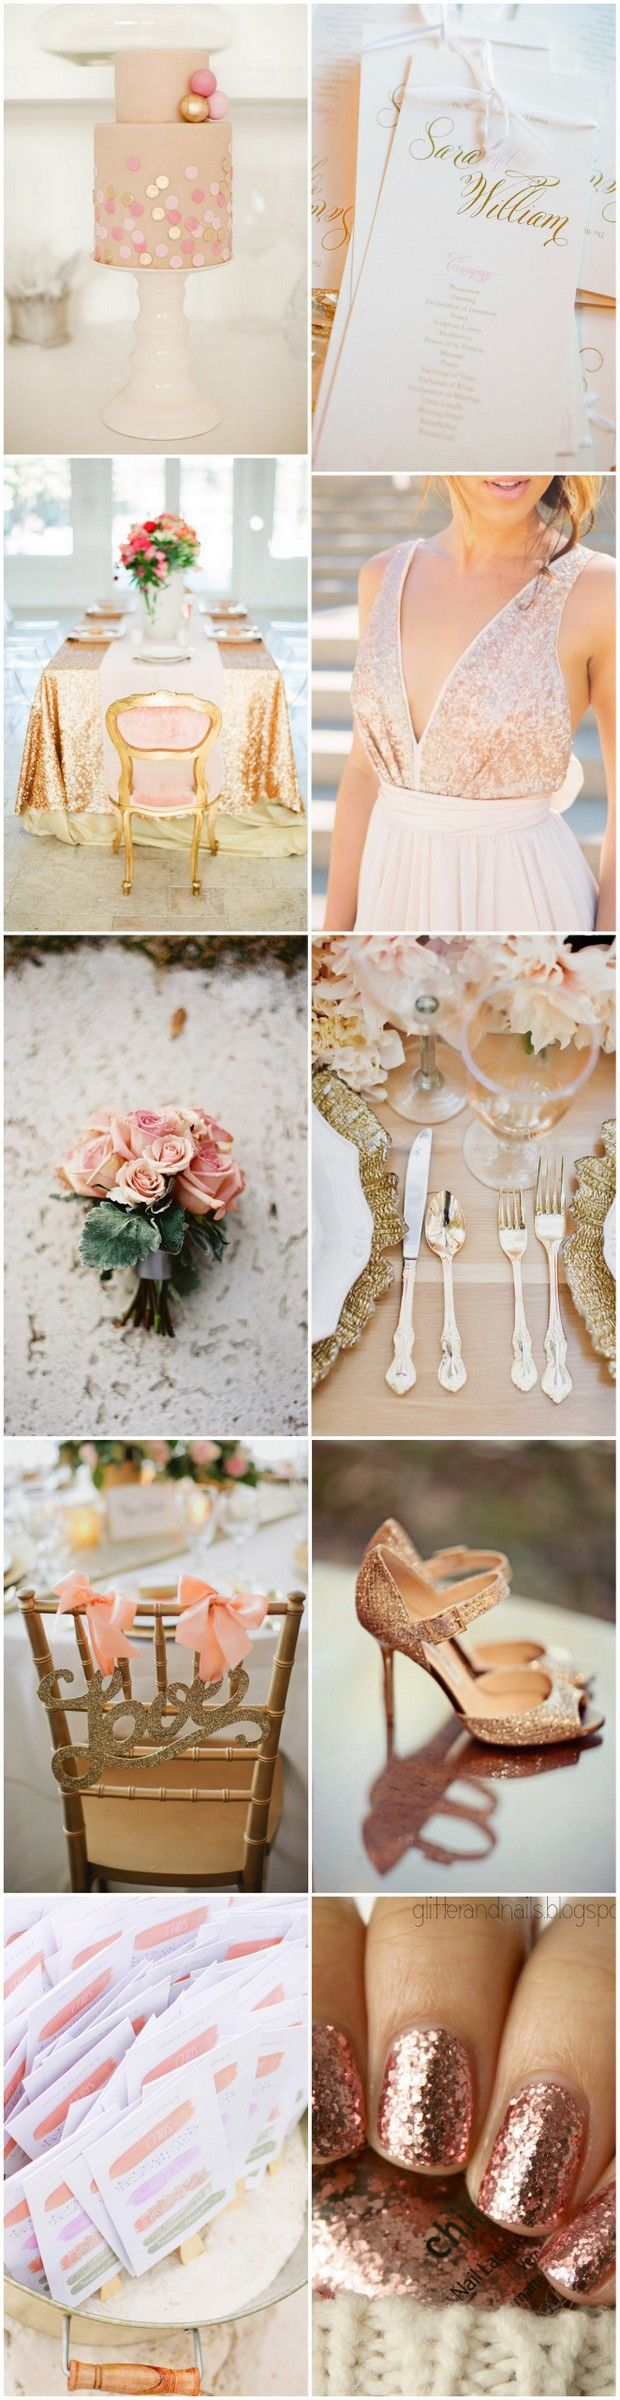 Rose gold wedding inspiration onewed rose gold ruffly wedding chair - 126 Best Rose Gold Images On Pinterest Marriage Rose Gold Weddings And Dresses